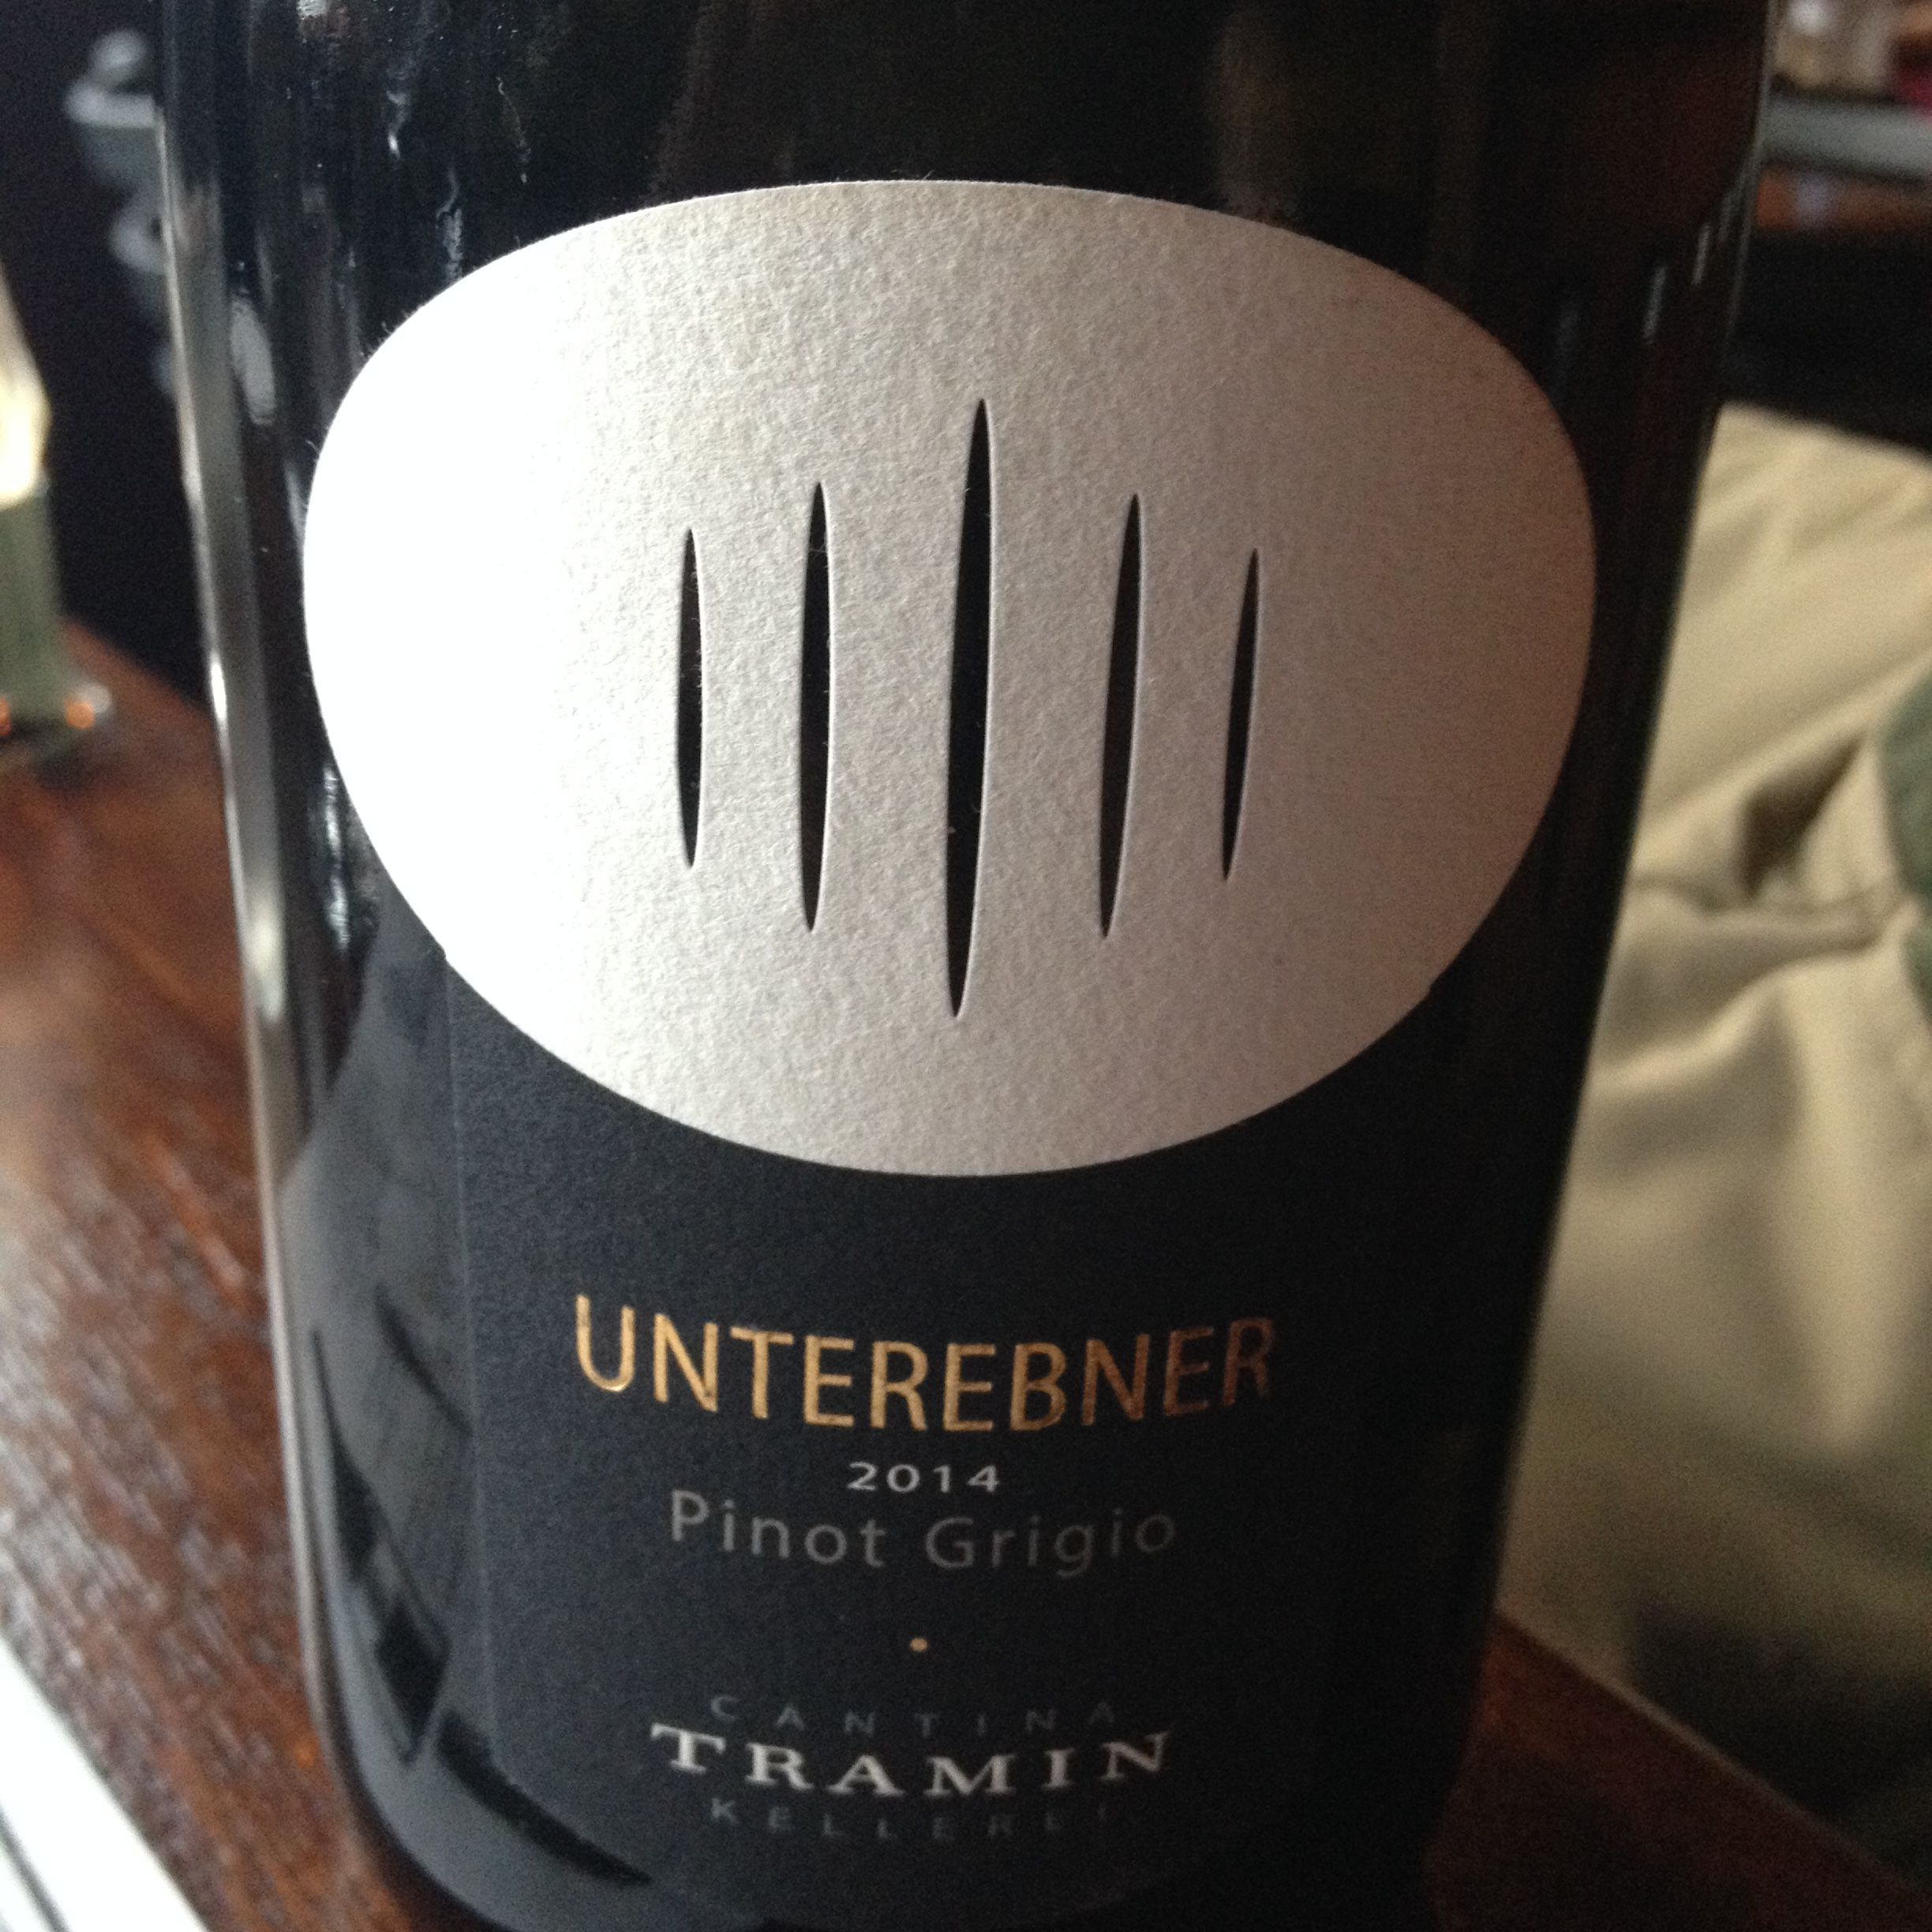 ^2014 Tramin Unterebner Pinot Grigio - Powerfully citrusy nose with a lovely, slightly creamy mouthfeel.